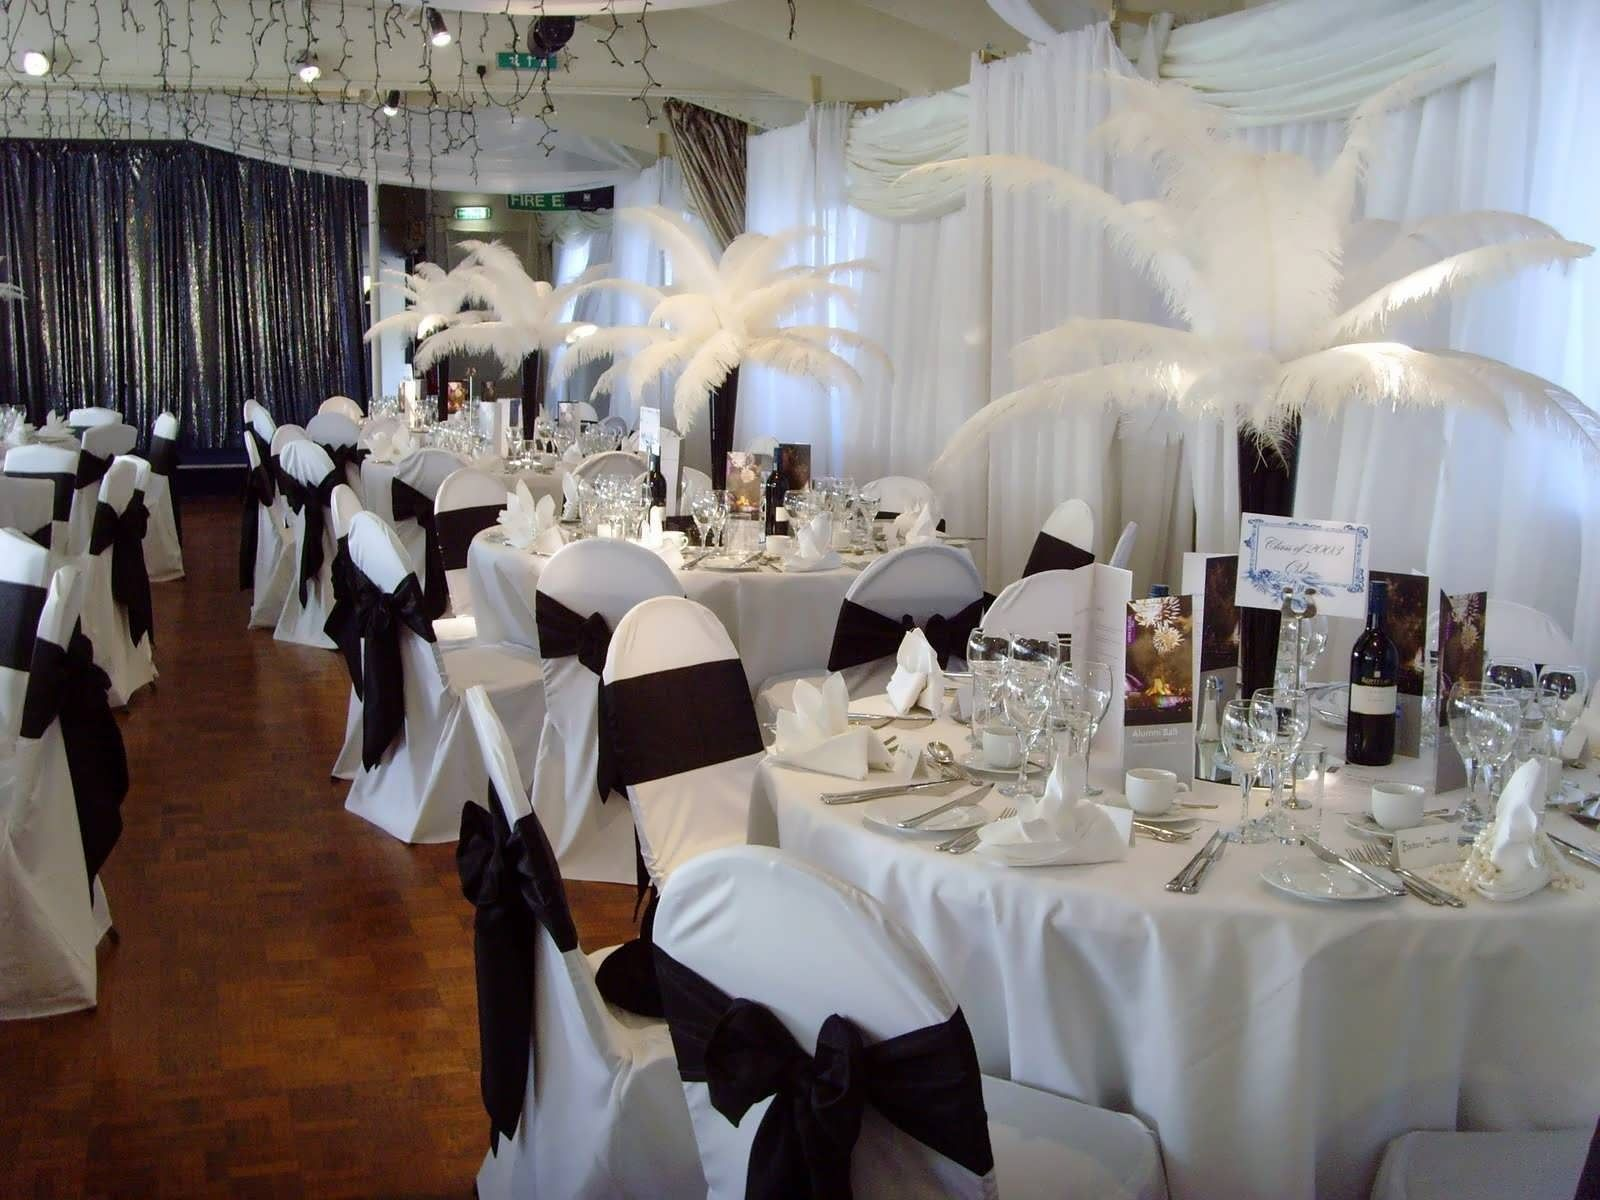 Wedding decorations ideas pictures included wedding decorations the best wedding decorations venues guide junglespirit Choice Image